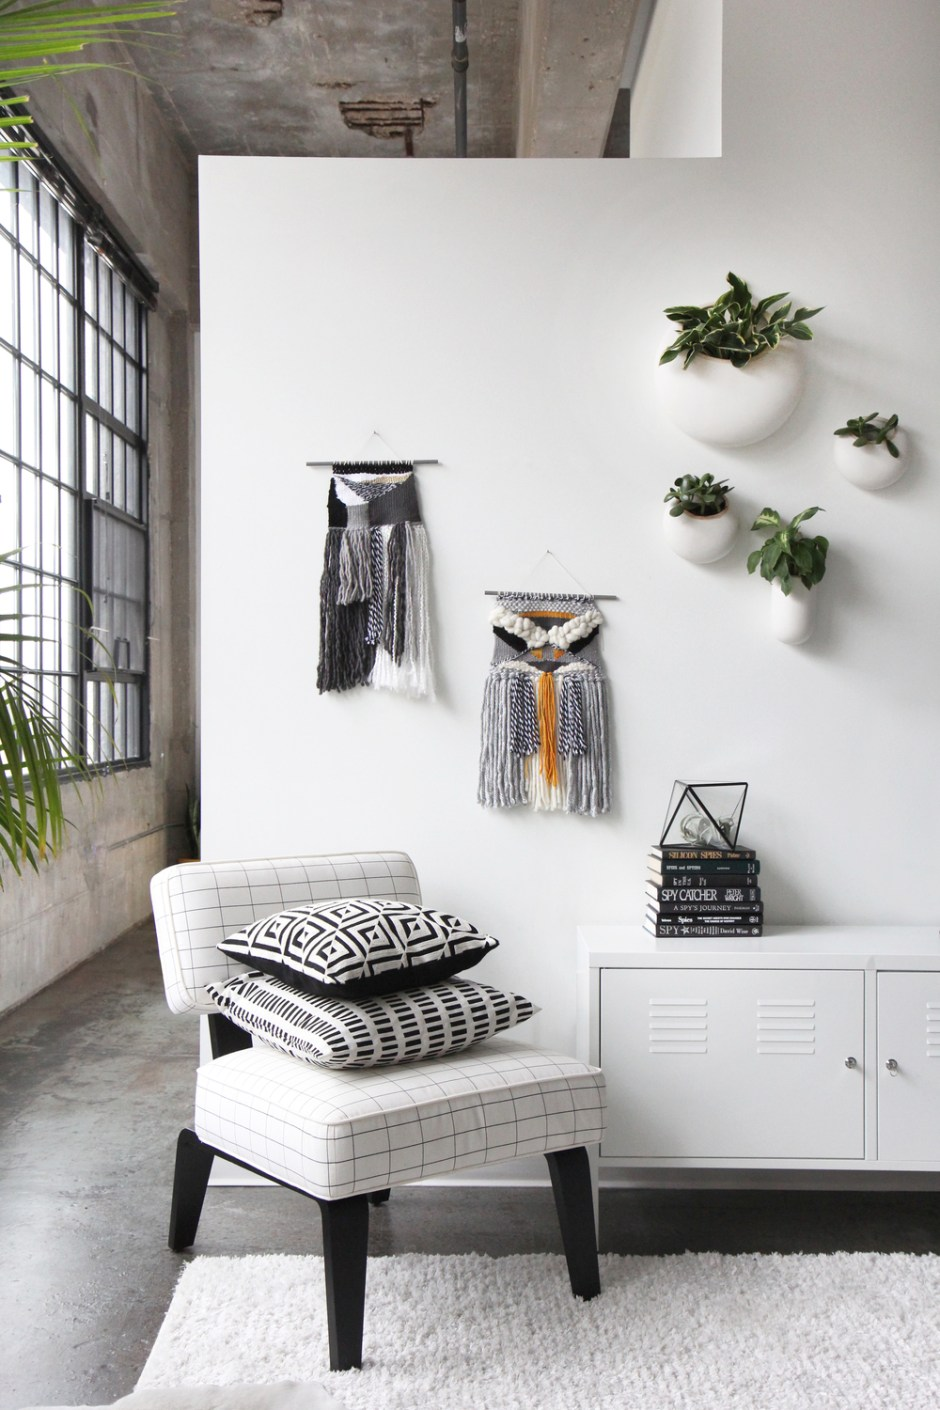 ADD TEXTURE TO YOUR WALLS WITH DECORATIVE WALL HANGINGS | You could even combine them with a woven textured wall hanging or two, which offers tactile textural interest.